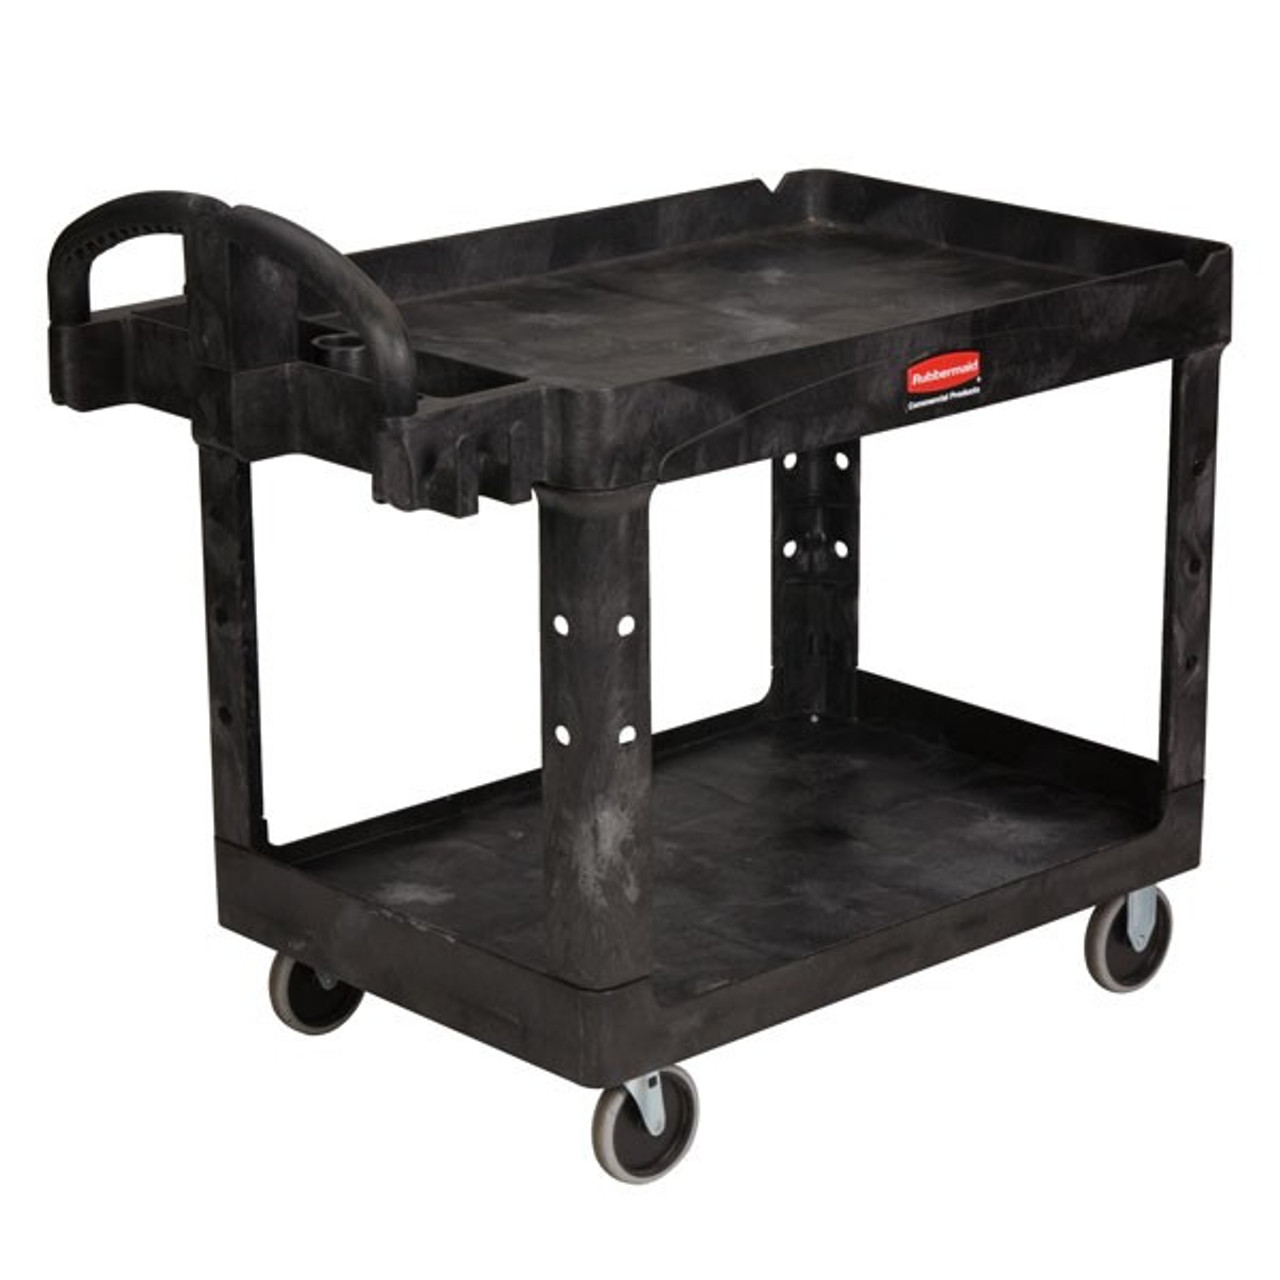 Rubbermaid Heavy-Duty Cart Lipped Shelf M